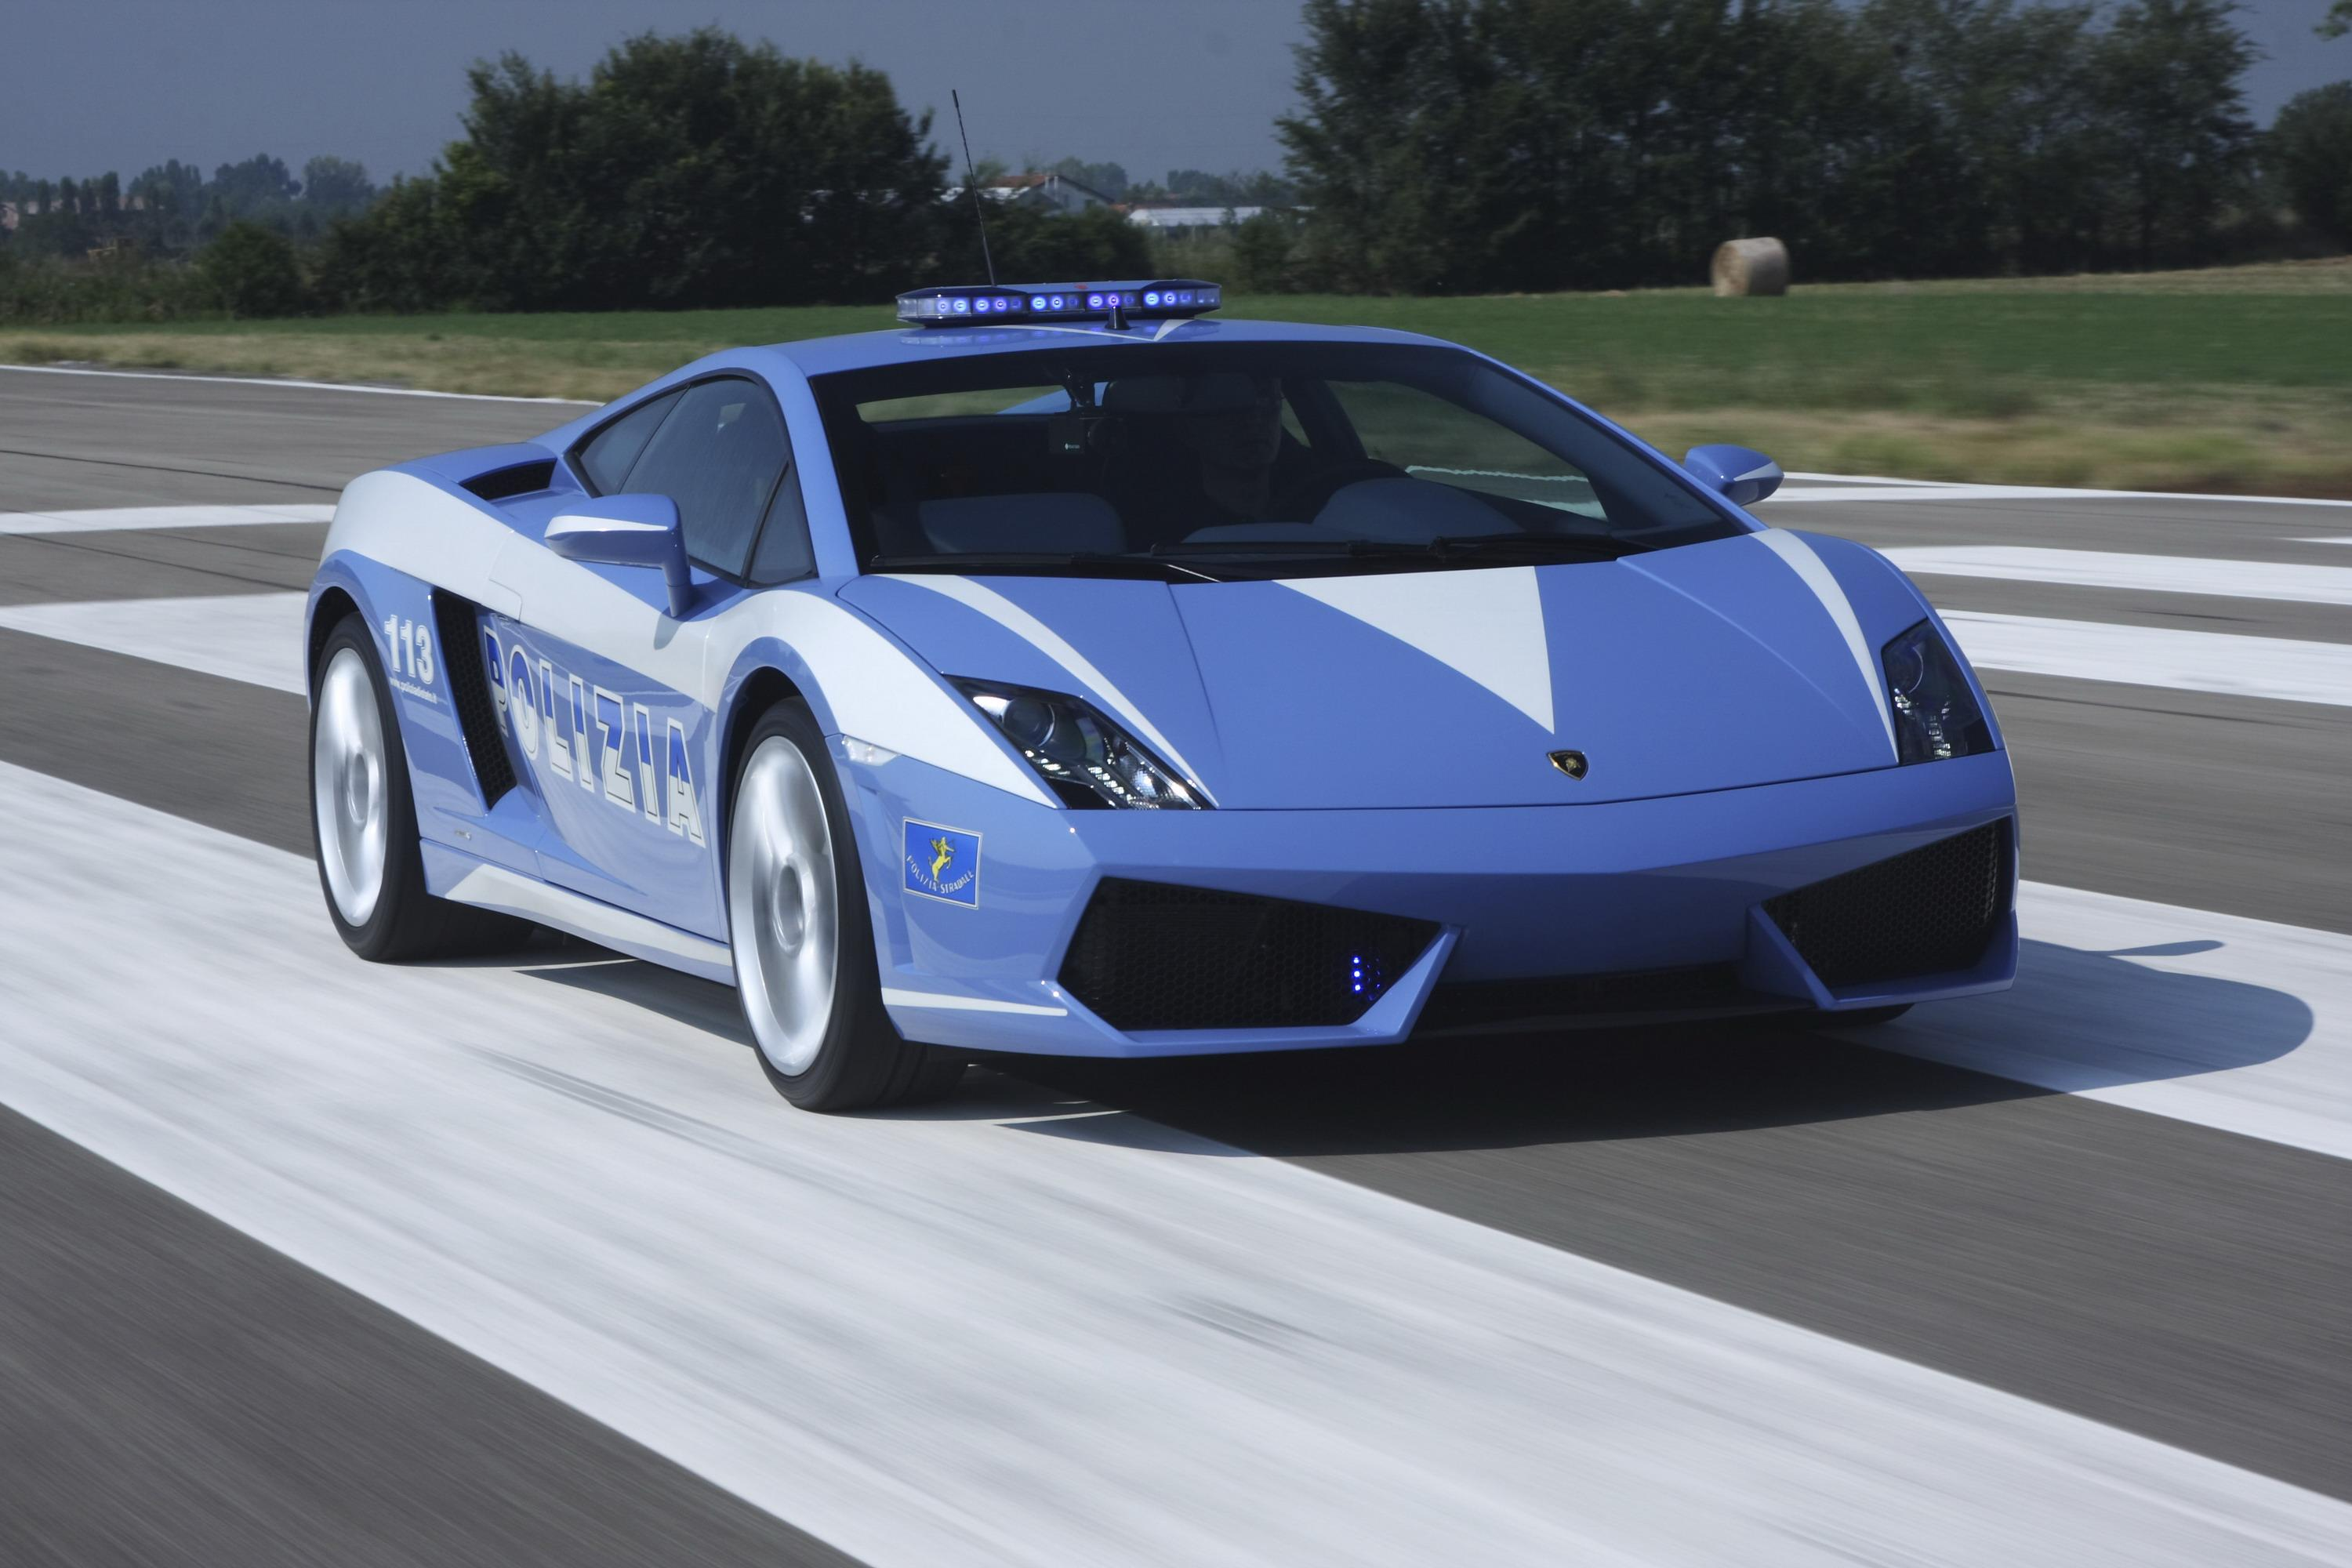 2009 Lamborghini Gallardo Lp560 4 Polizia Top Speed